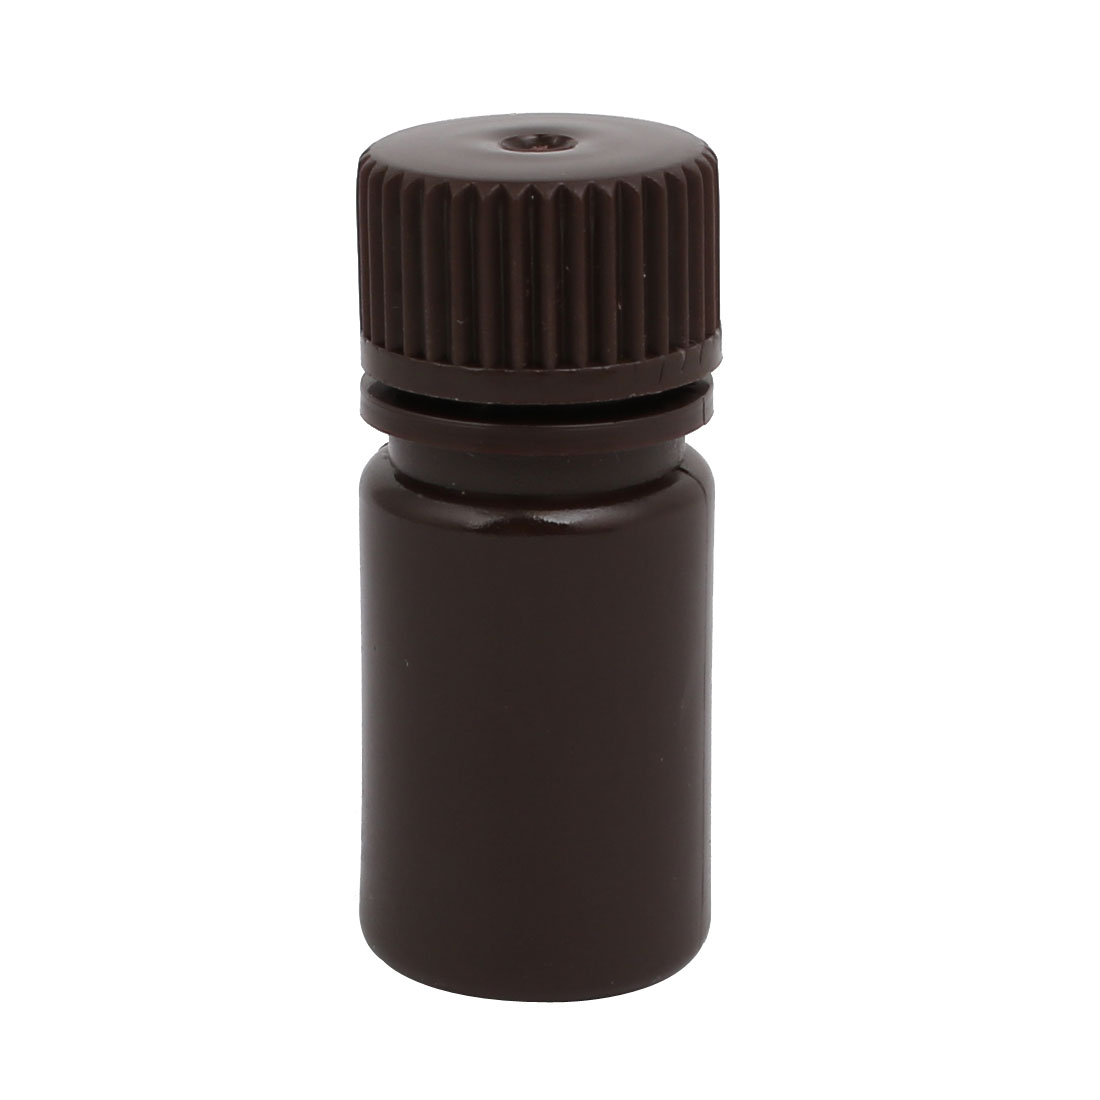 15ml 13mm Diameter HDPE Plastic Round Wide Mouth Laboratory Bottle Brown